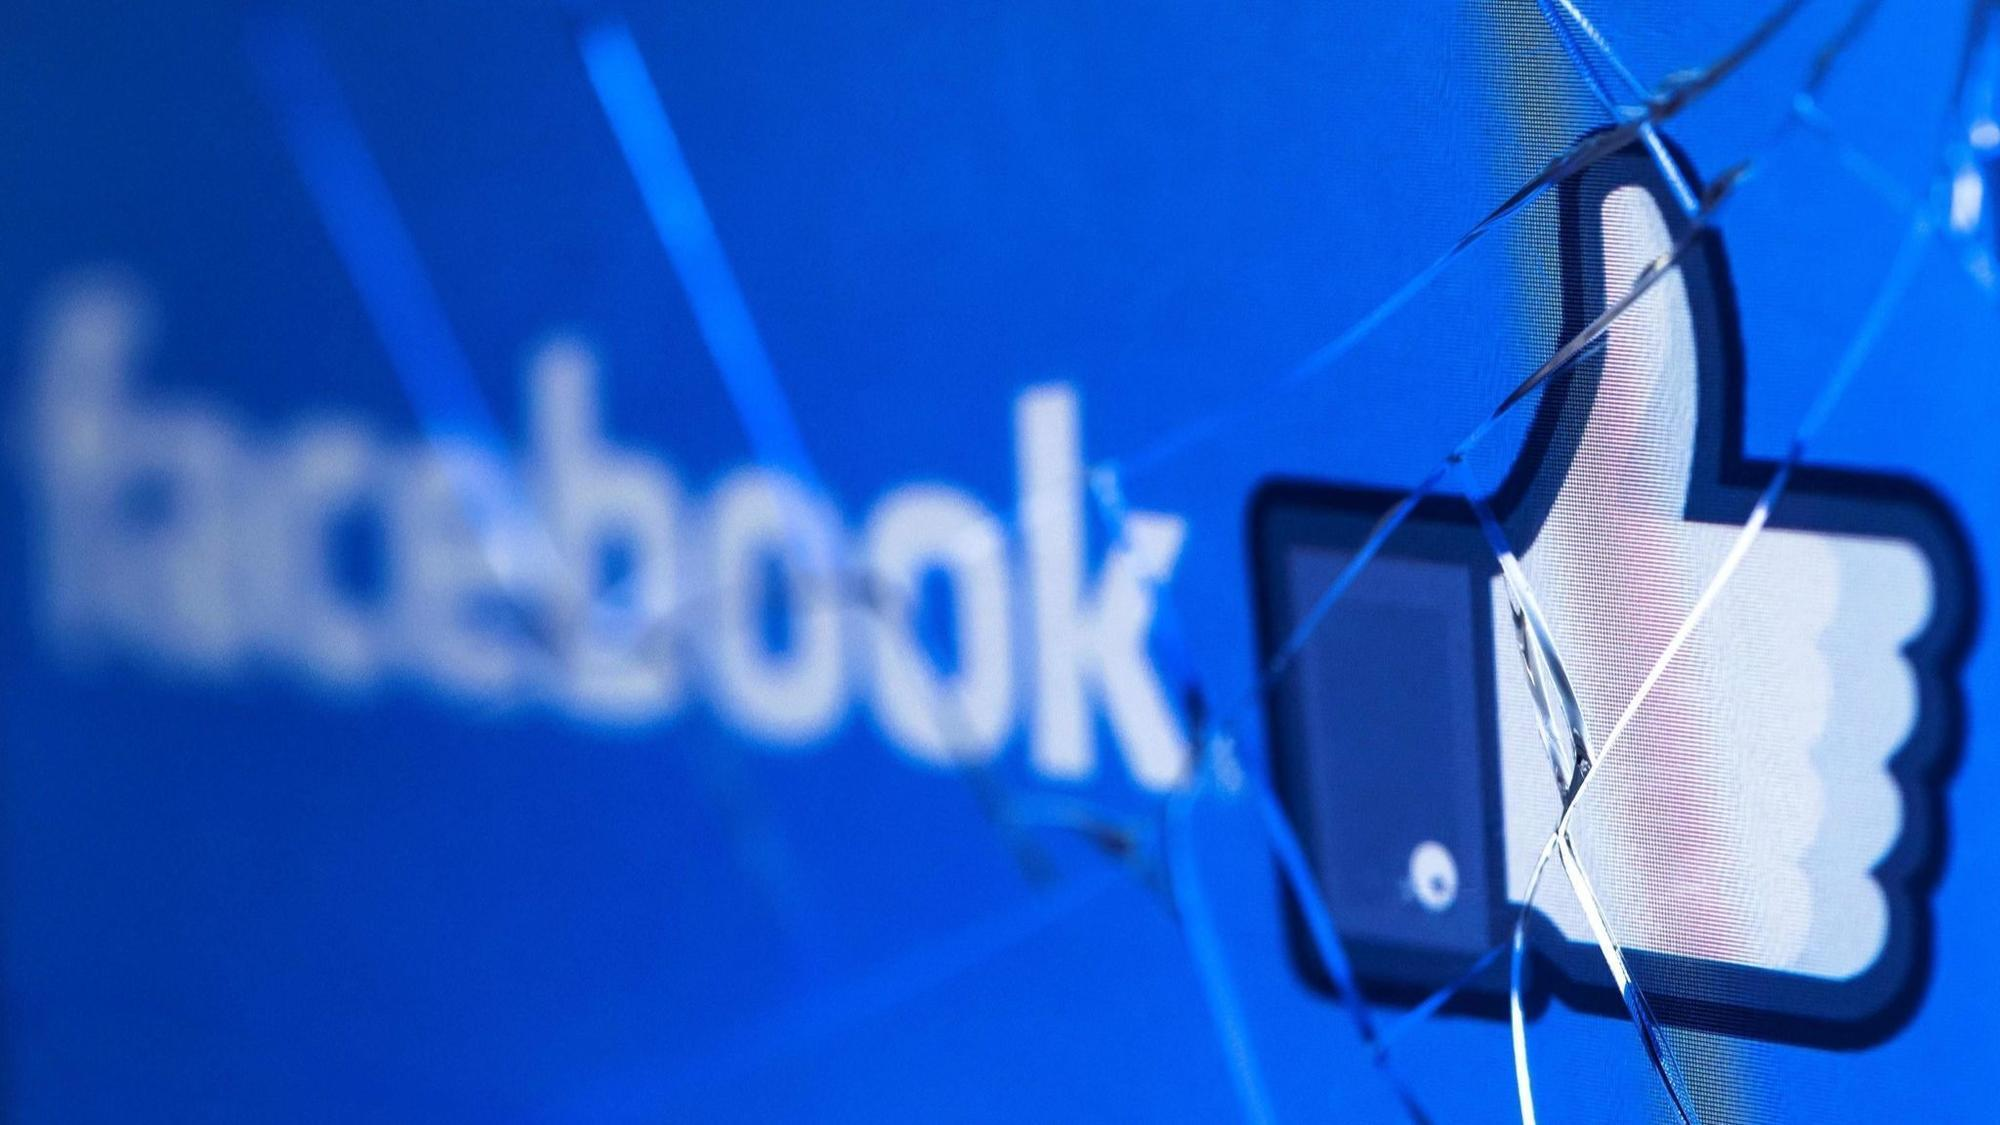 Did FacebookDown prove we're all addicted to social media?